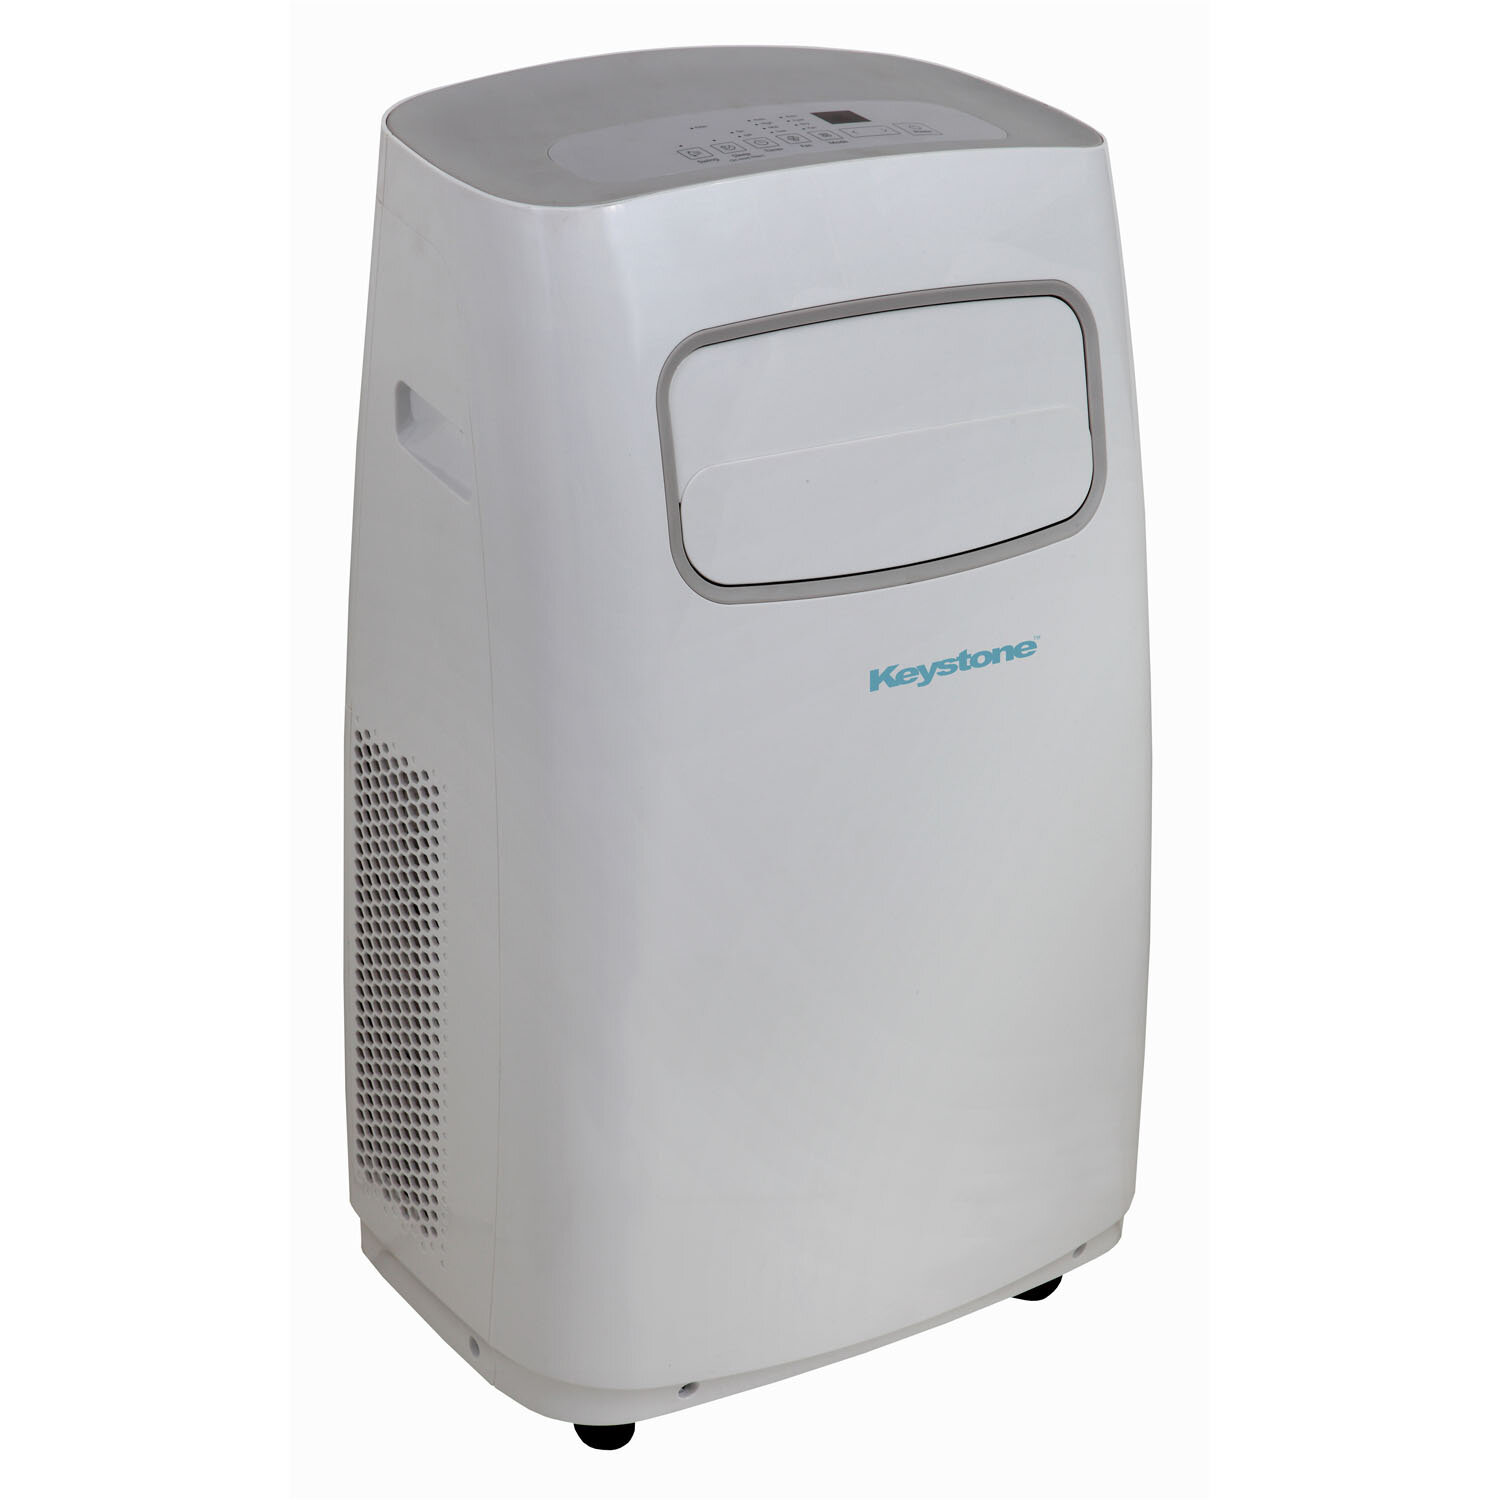 #566D75 Keystone 12 000 BTU Portable Air Conditioner With Remote  Recommended 9877 15000 Btu Portable Air Conditioner pics with 1500x1500 px on helpvideos.info - Air Conditioners, Air Coolers and more